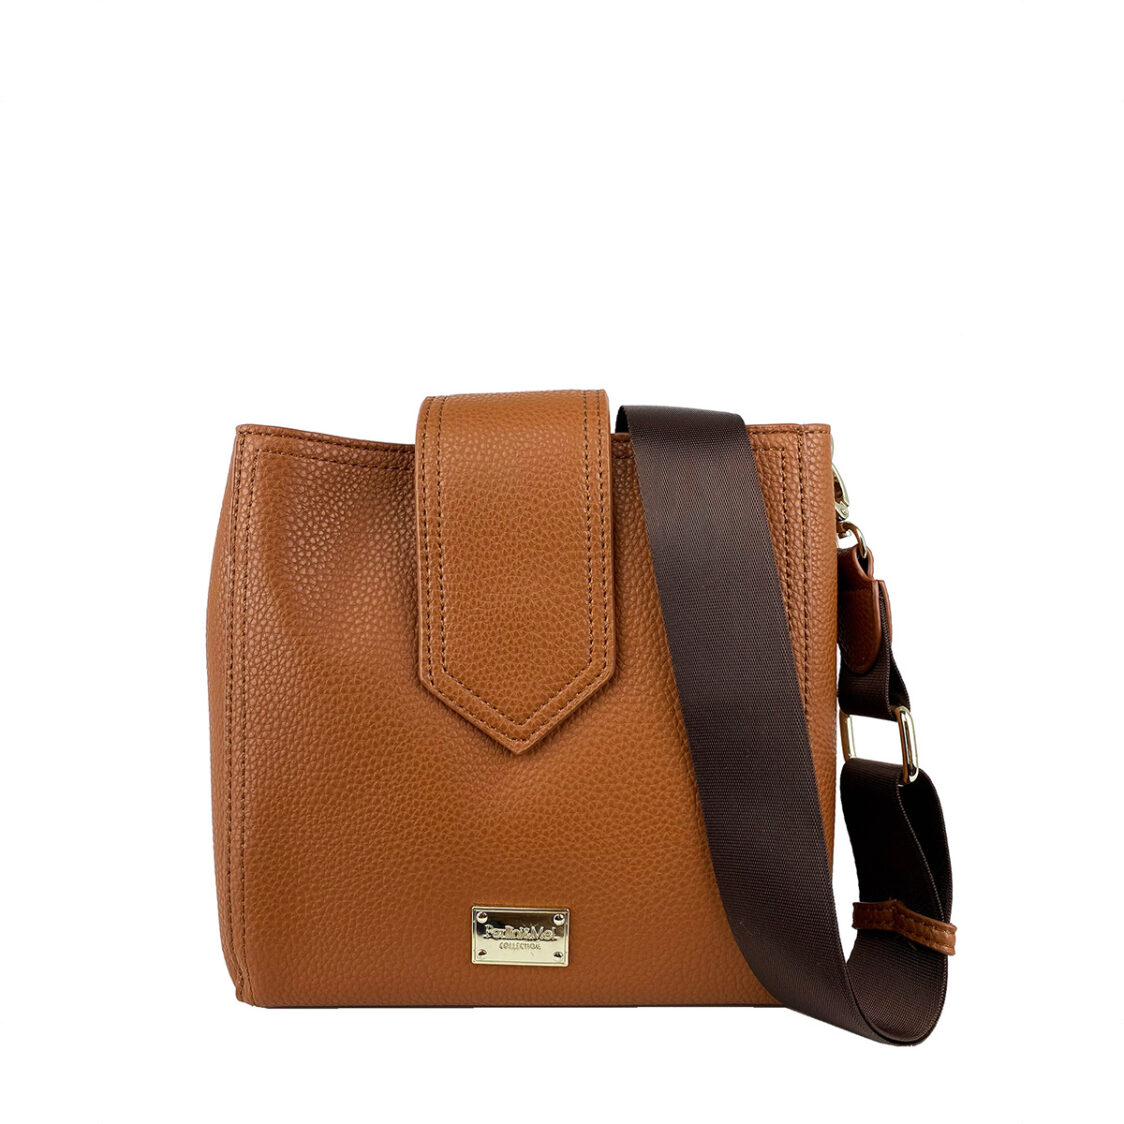 Perllini  Mel Pebbled Faux Leather Square Sling Bag With Webbing Strap Camel